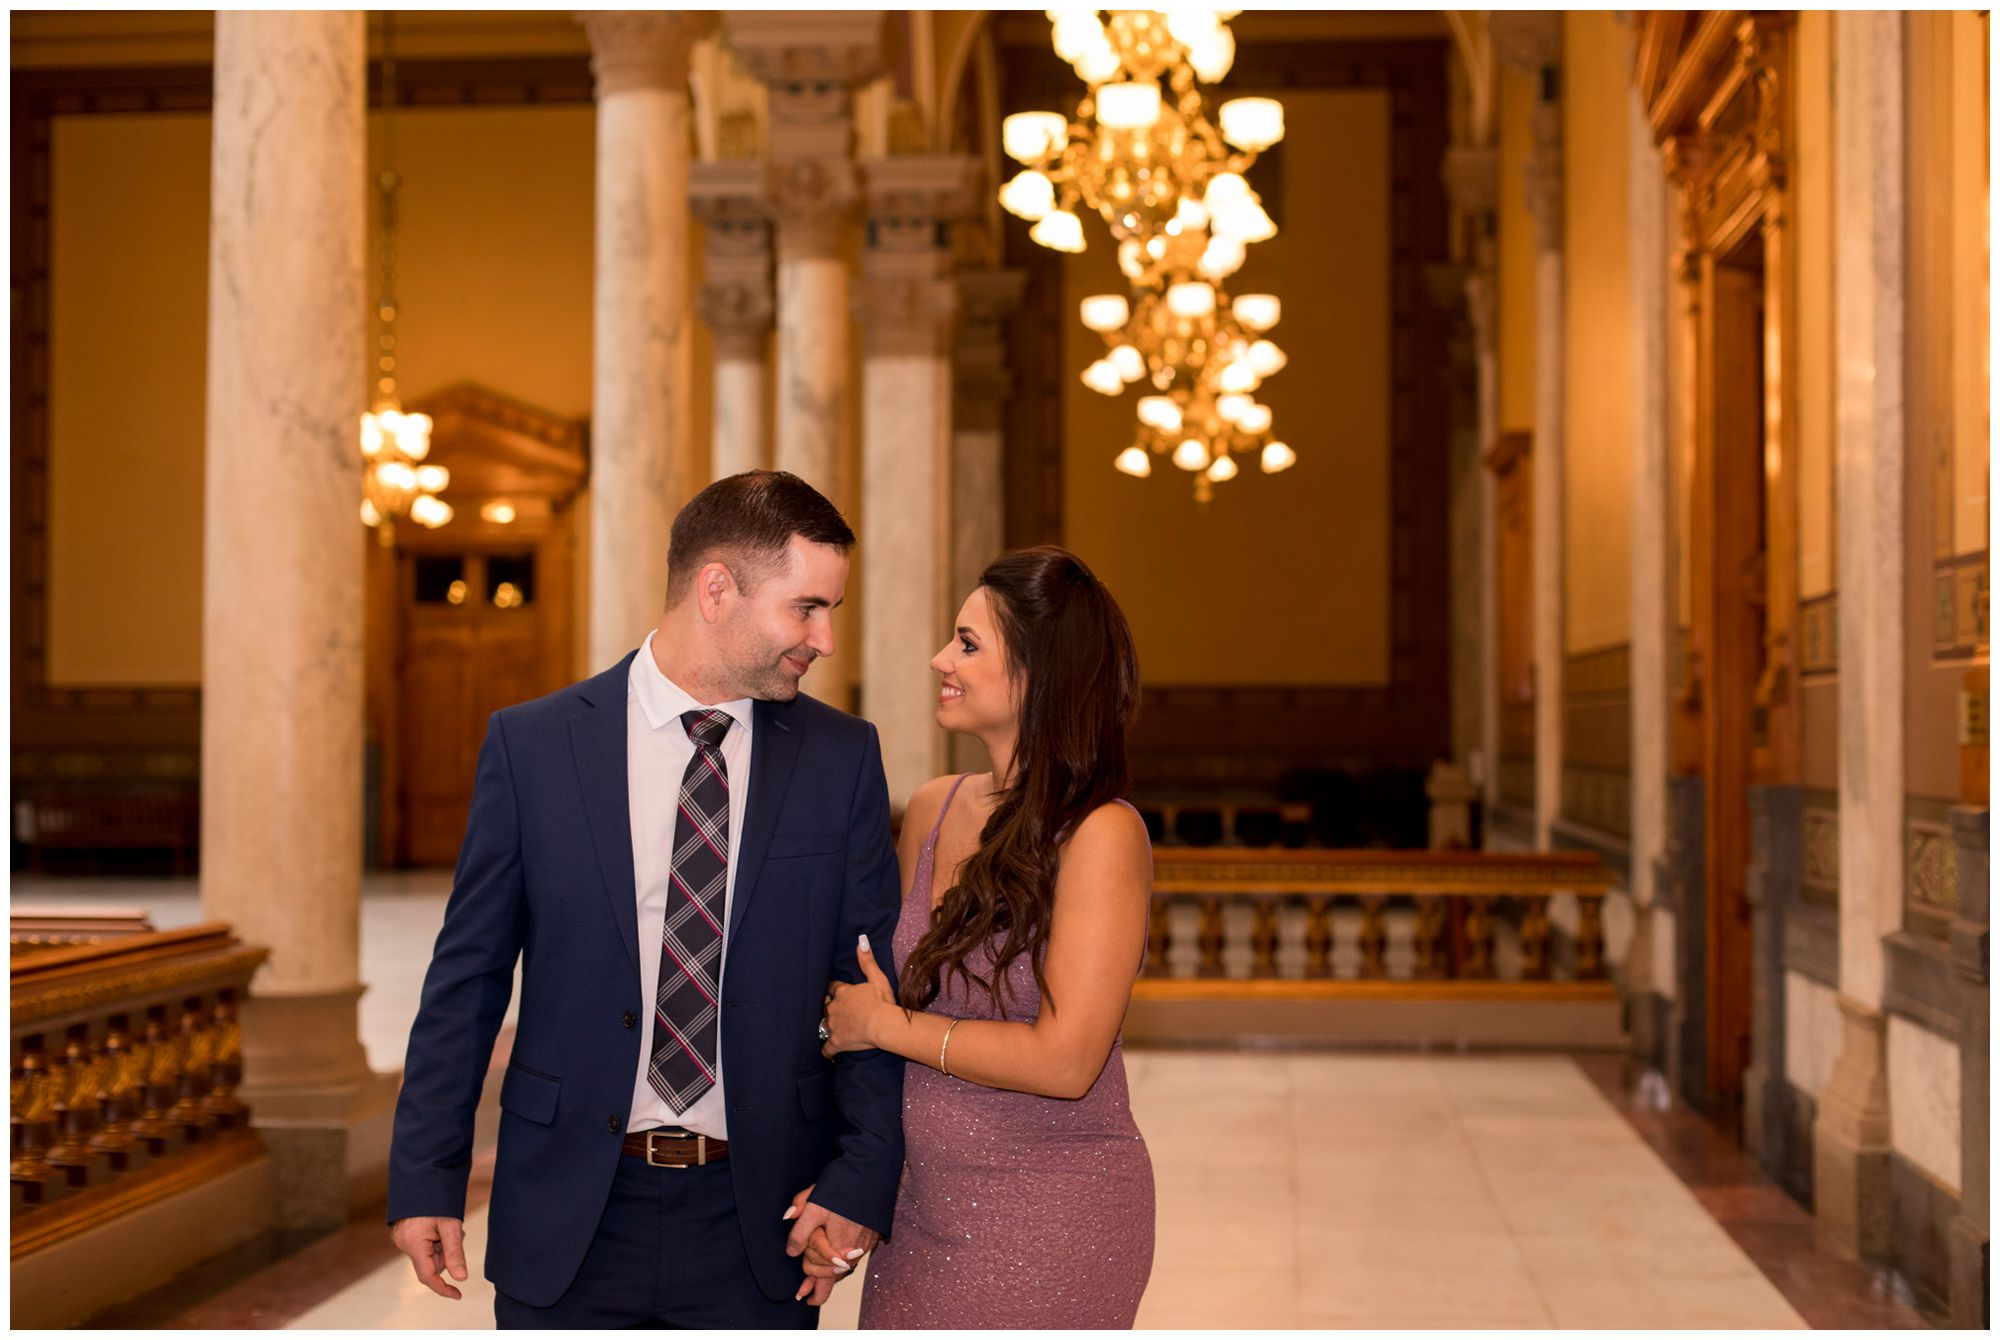 bride wraps arm around groom's arm and walk together after getting married at Indiana Statehouse in downtown Indianapolis